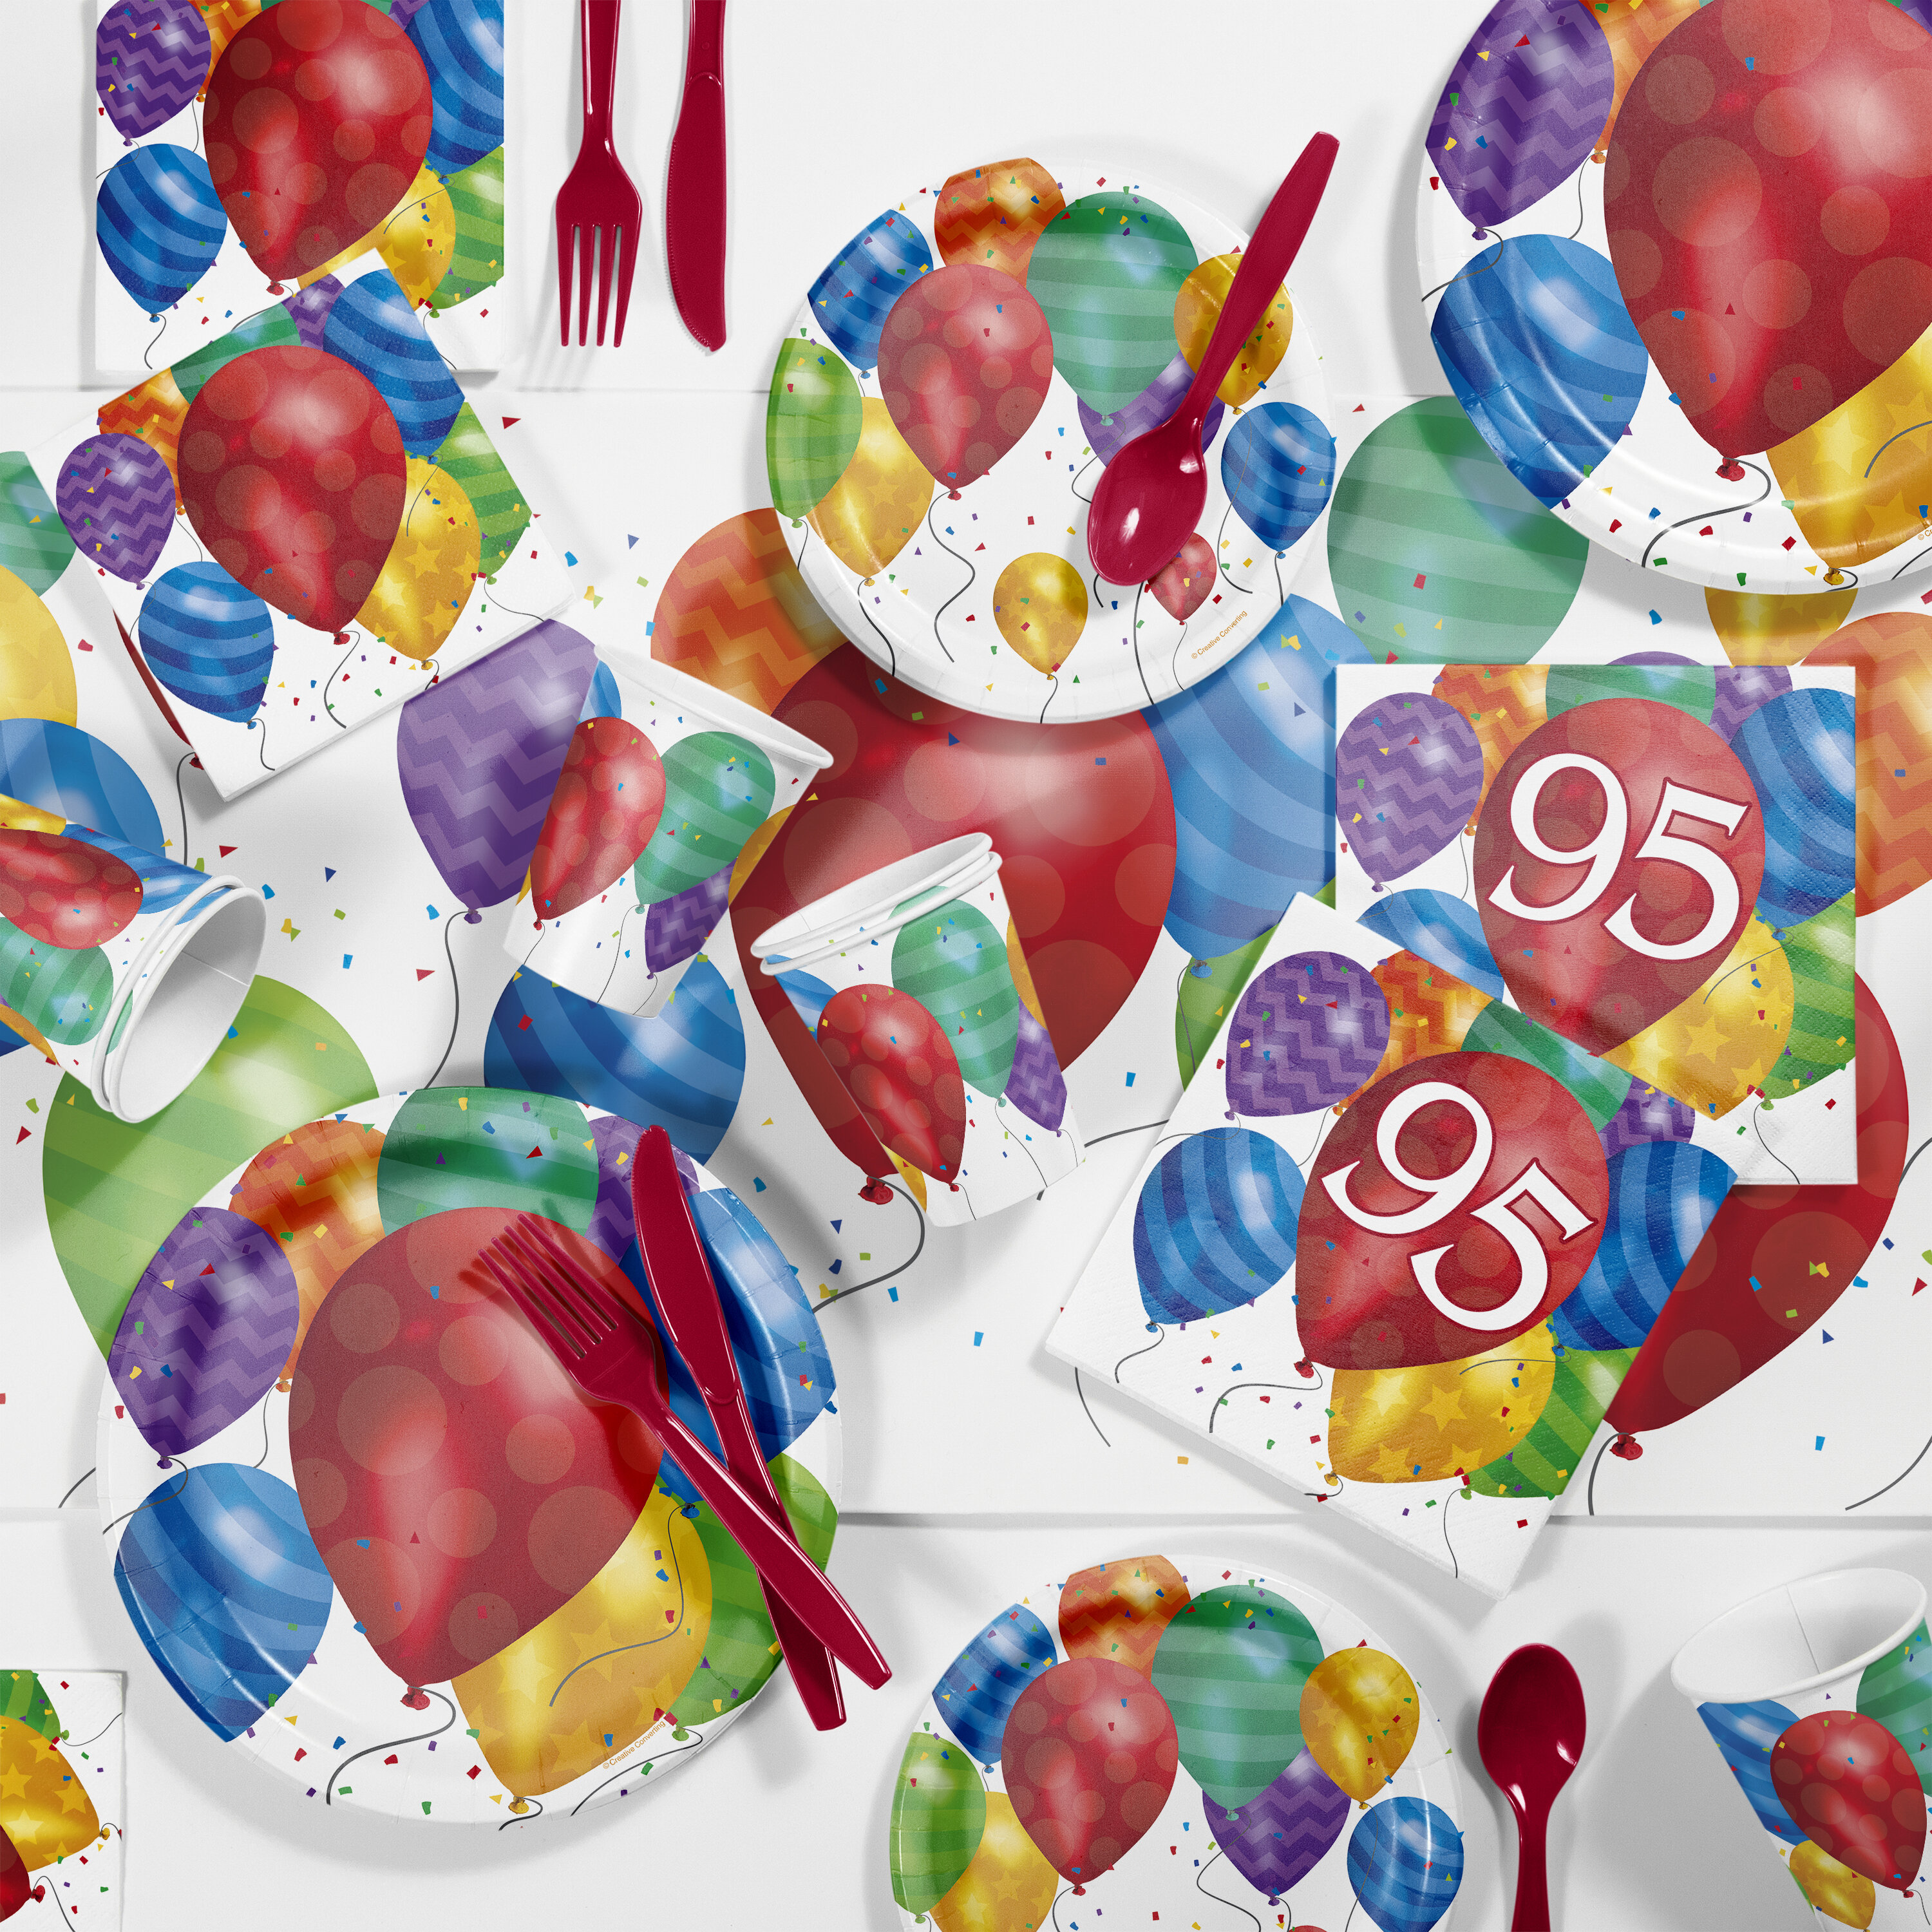 Creative Converting Balloon Blast 95th Birthday Party Paper Plastic Supplies Kit